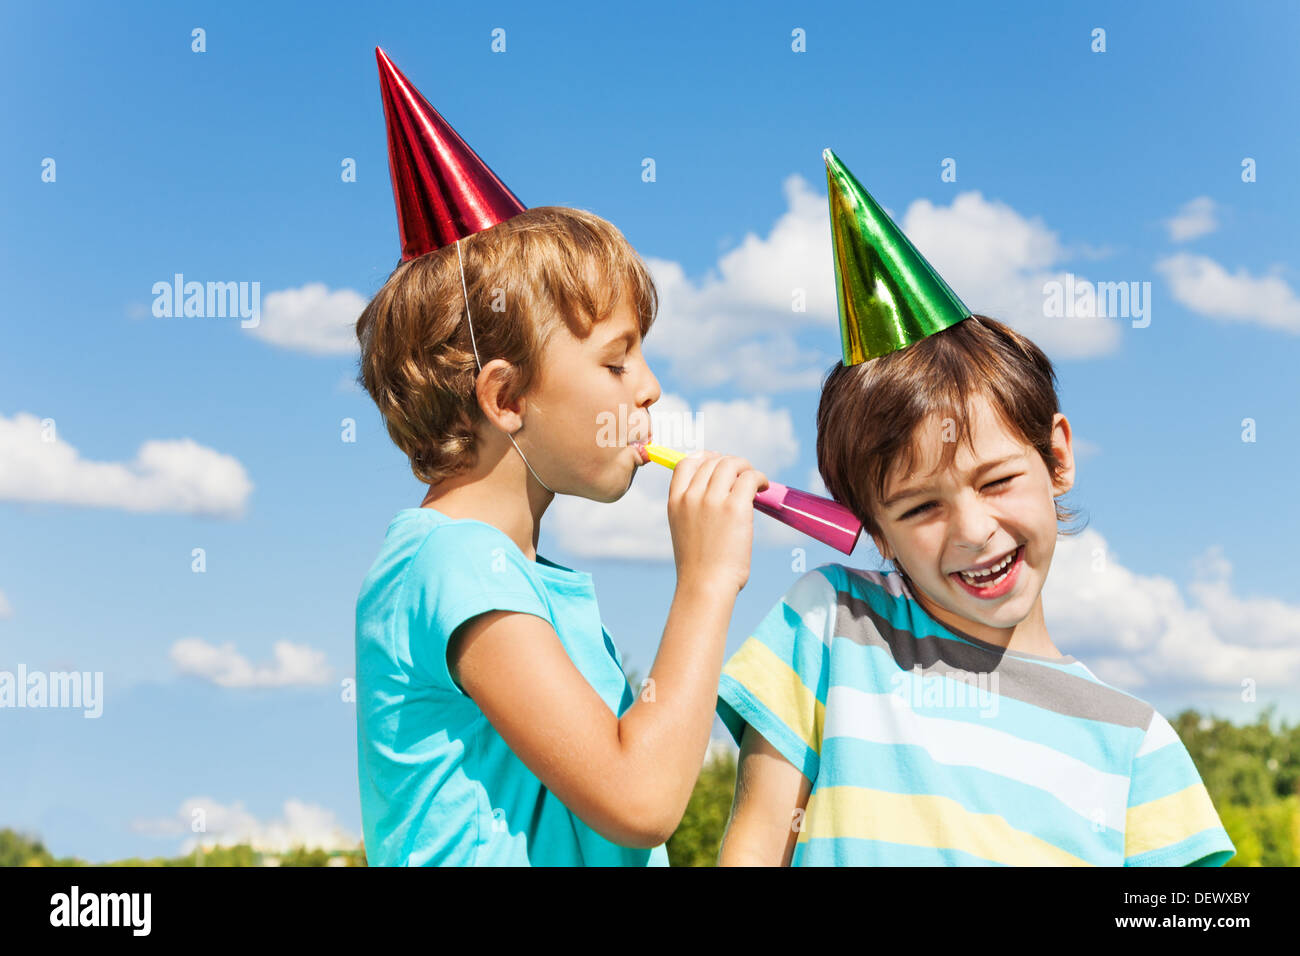 Two boys on birthday party having fun with blowing into noisemaker loudly  - Stock Image